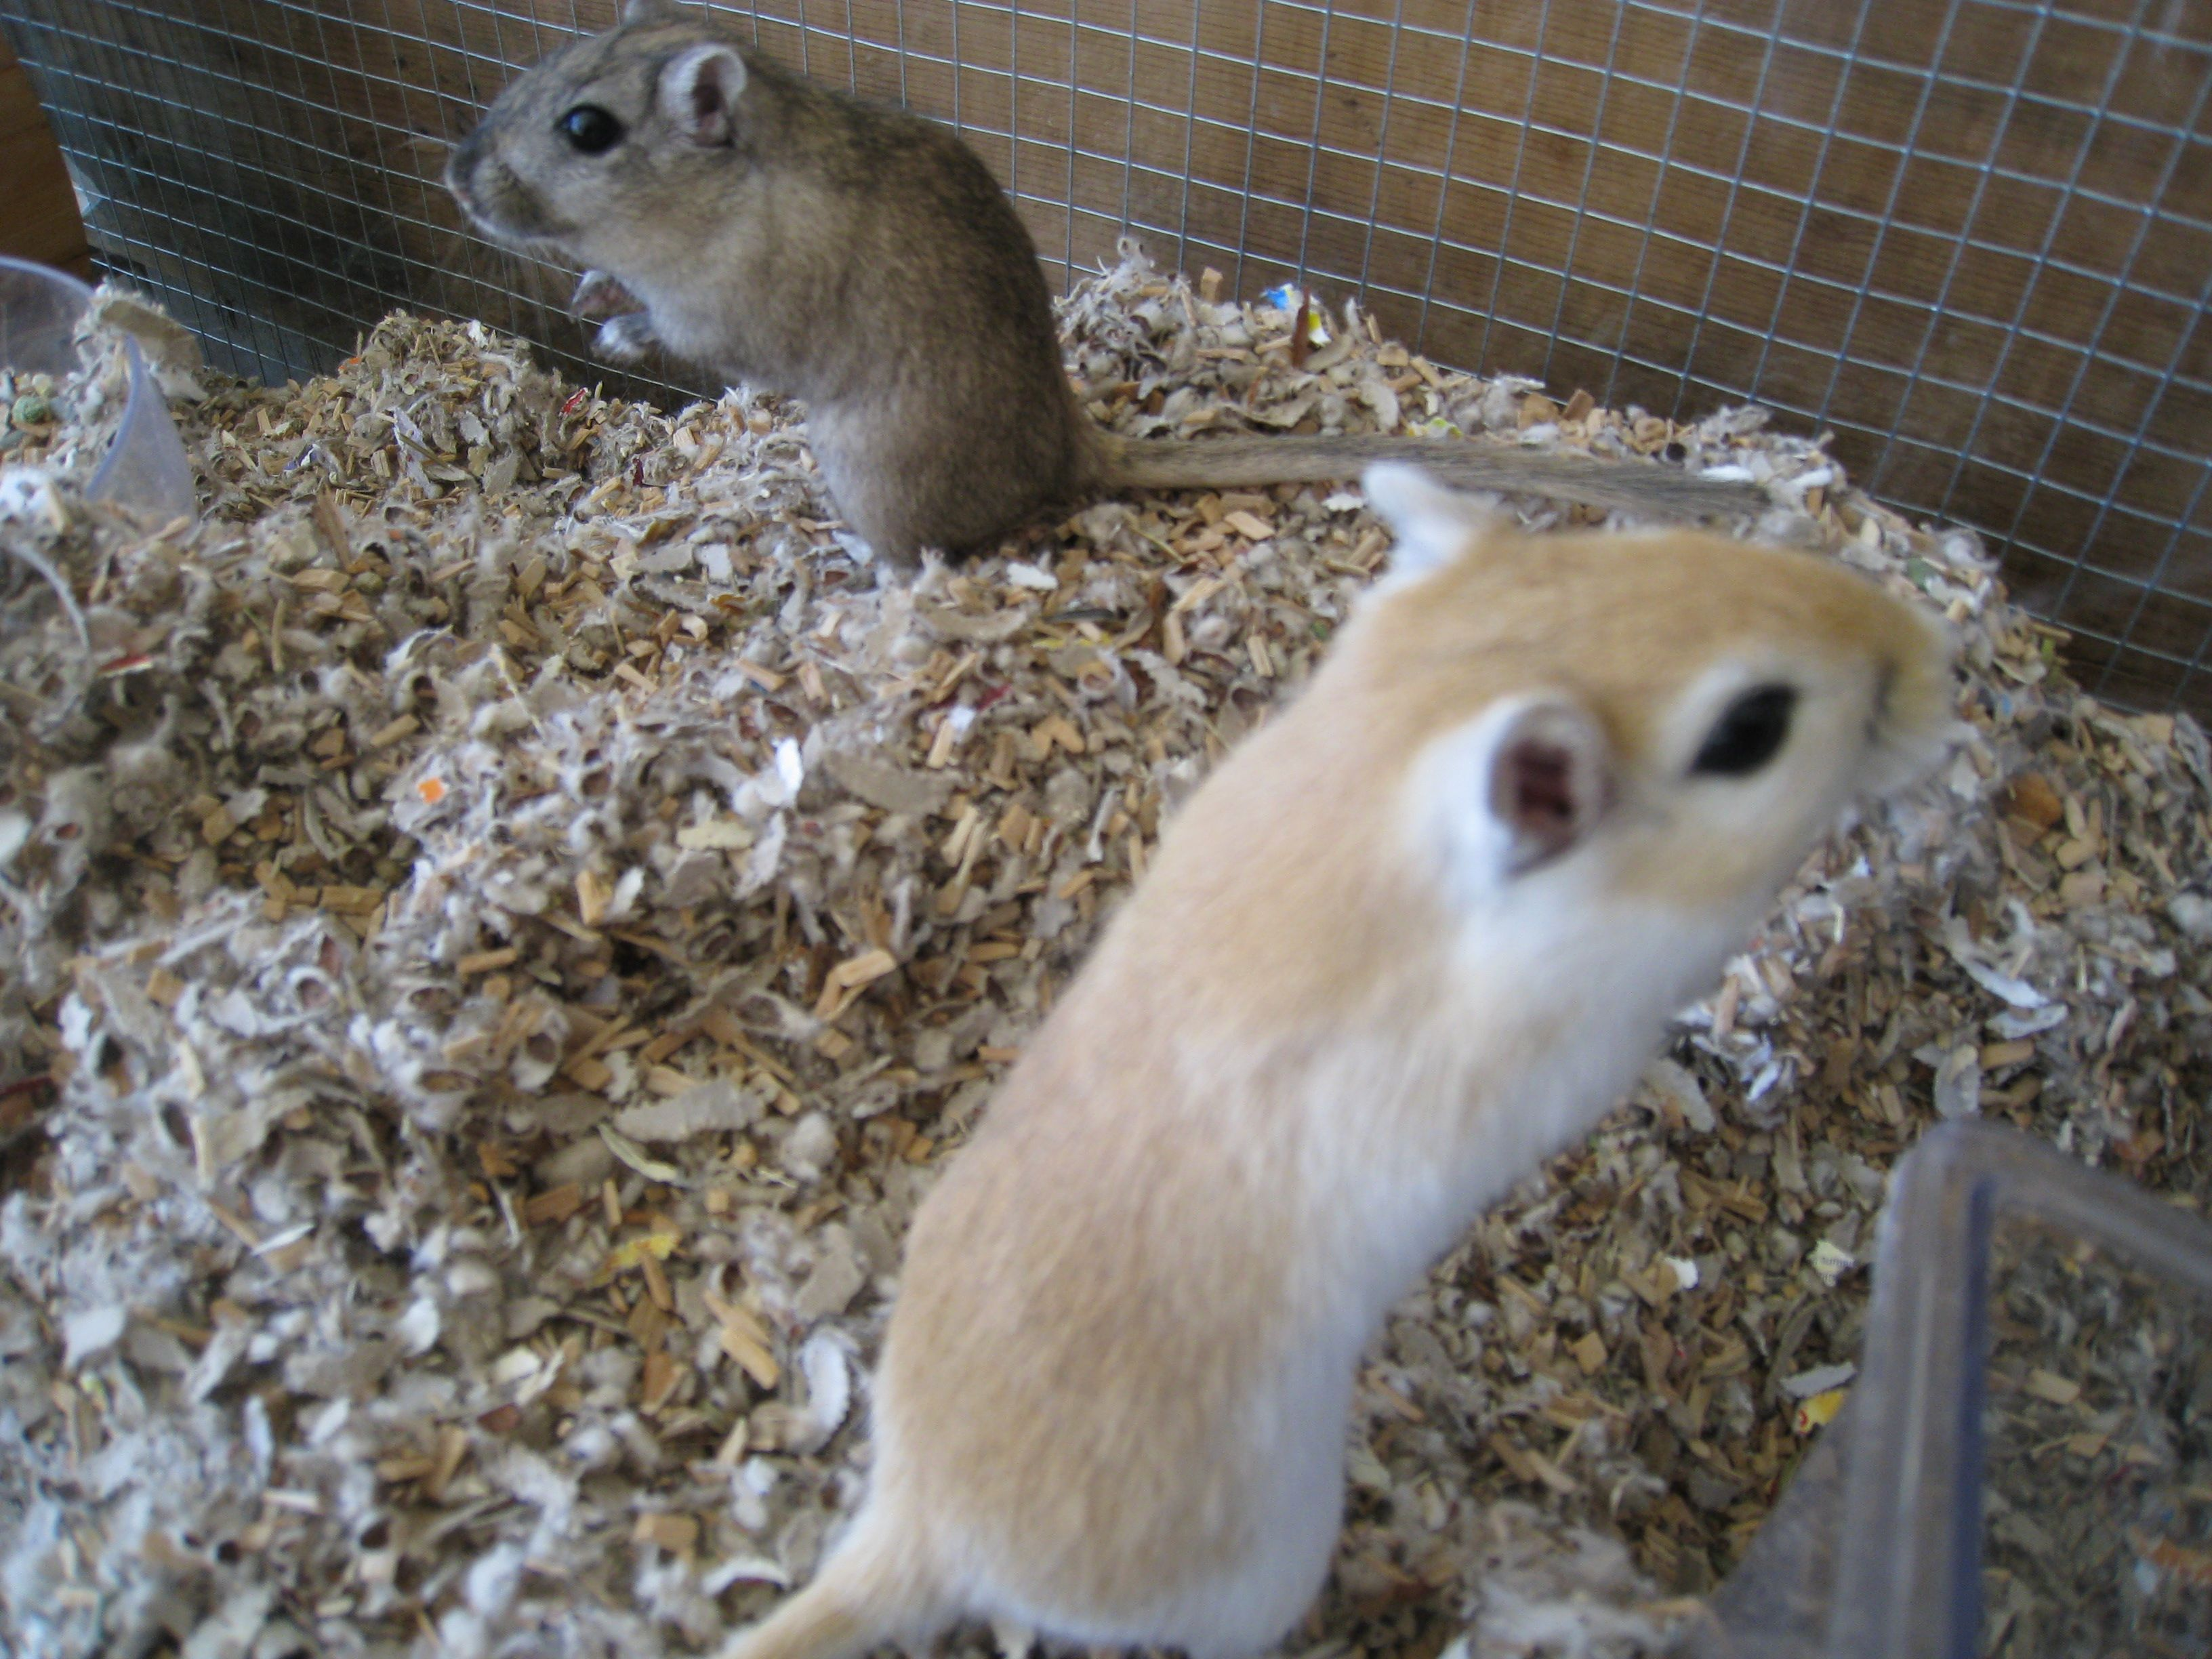 Pin By Mia Noel On Gerbils Gerbil Gerbil Cages Cute Creatures